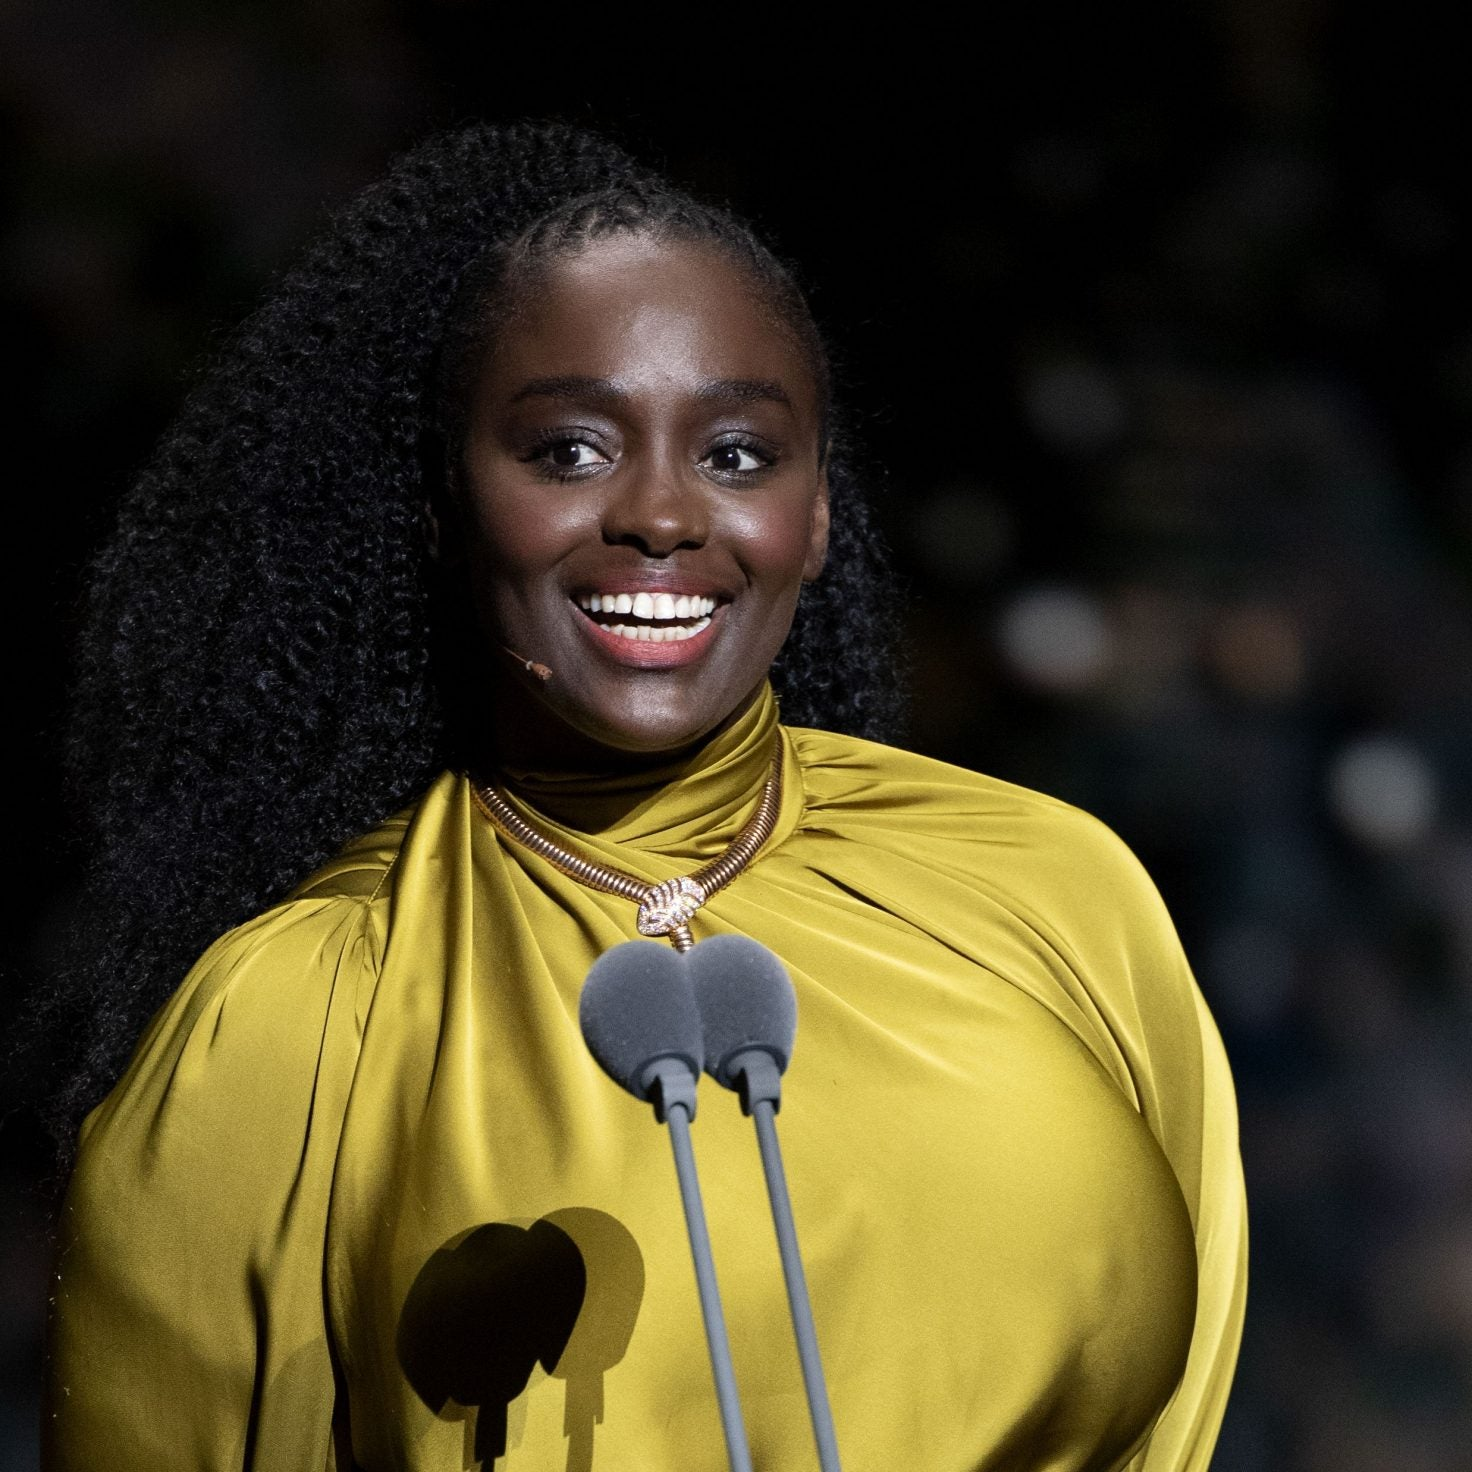 #CesarsSoWhite: Aïssa Maïga Gives Stunning Speech About Lack Of Diversity At 'French Oscars'